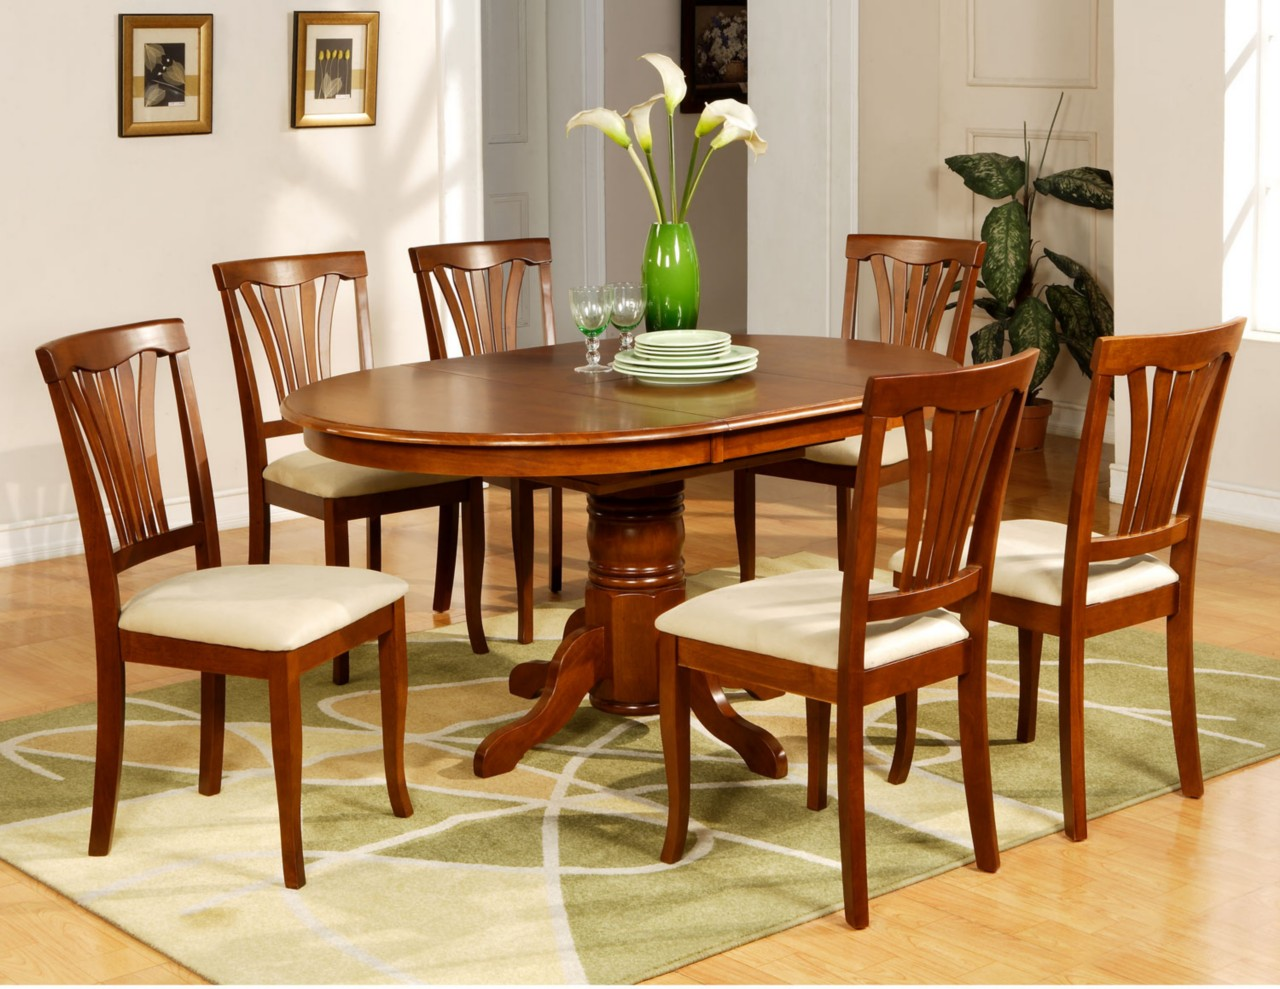 7 Pc Avon Oval Dinette Kitchen Dining Room Table With 6